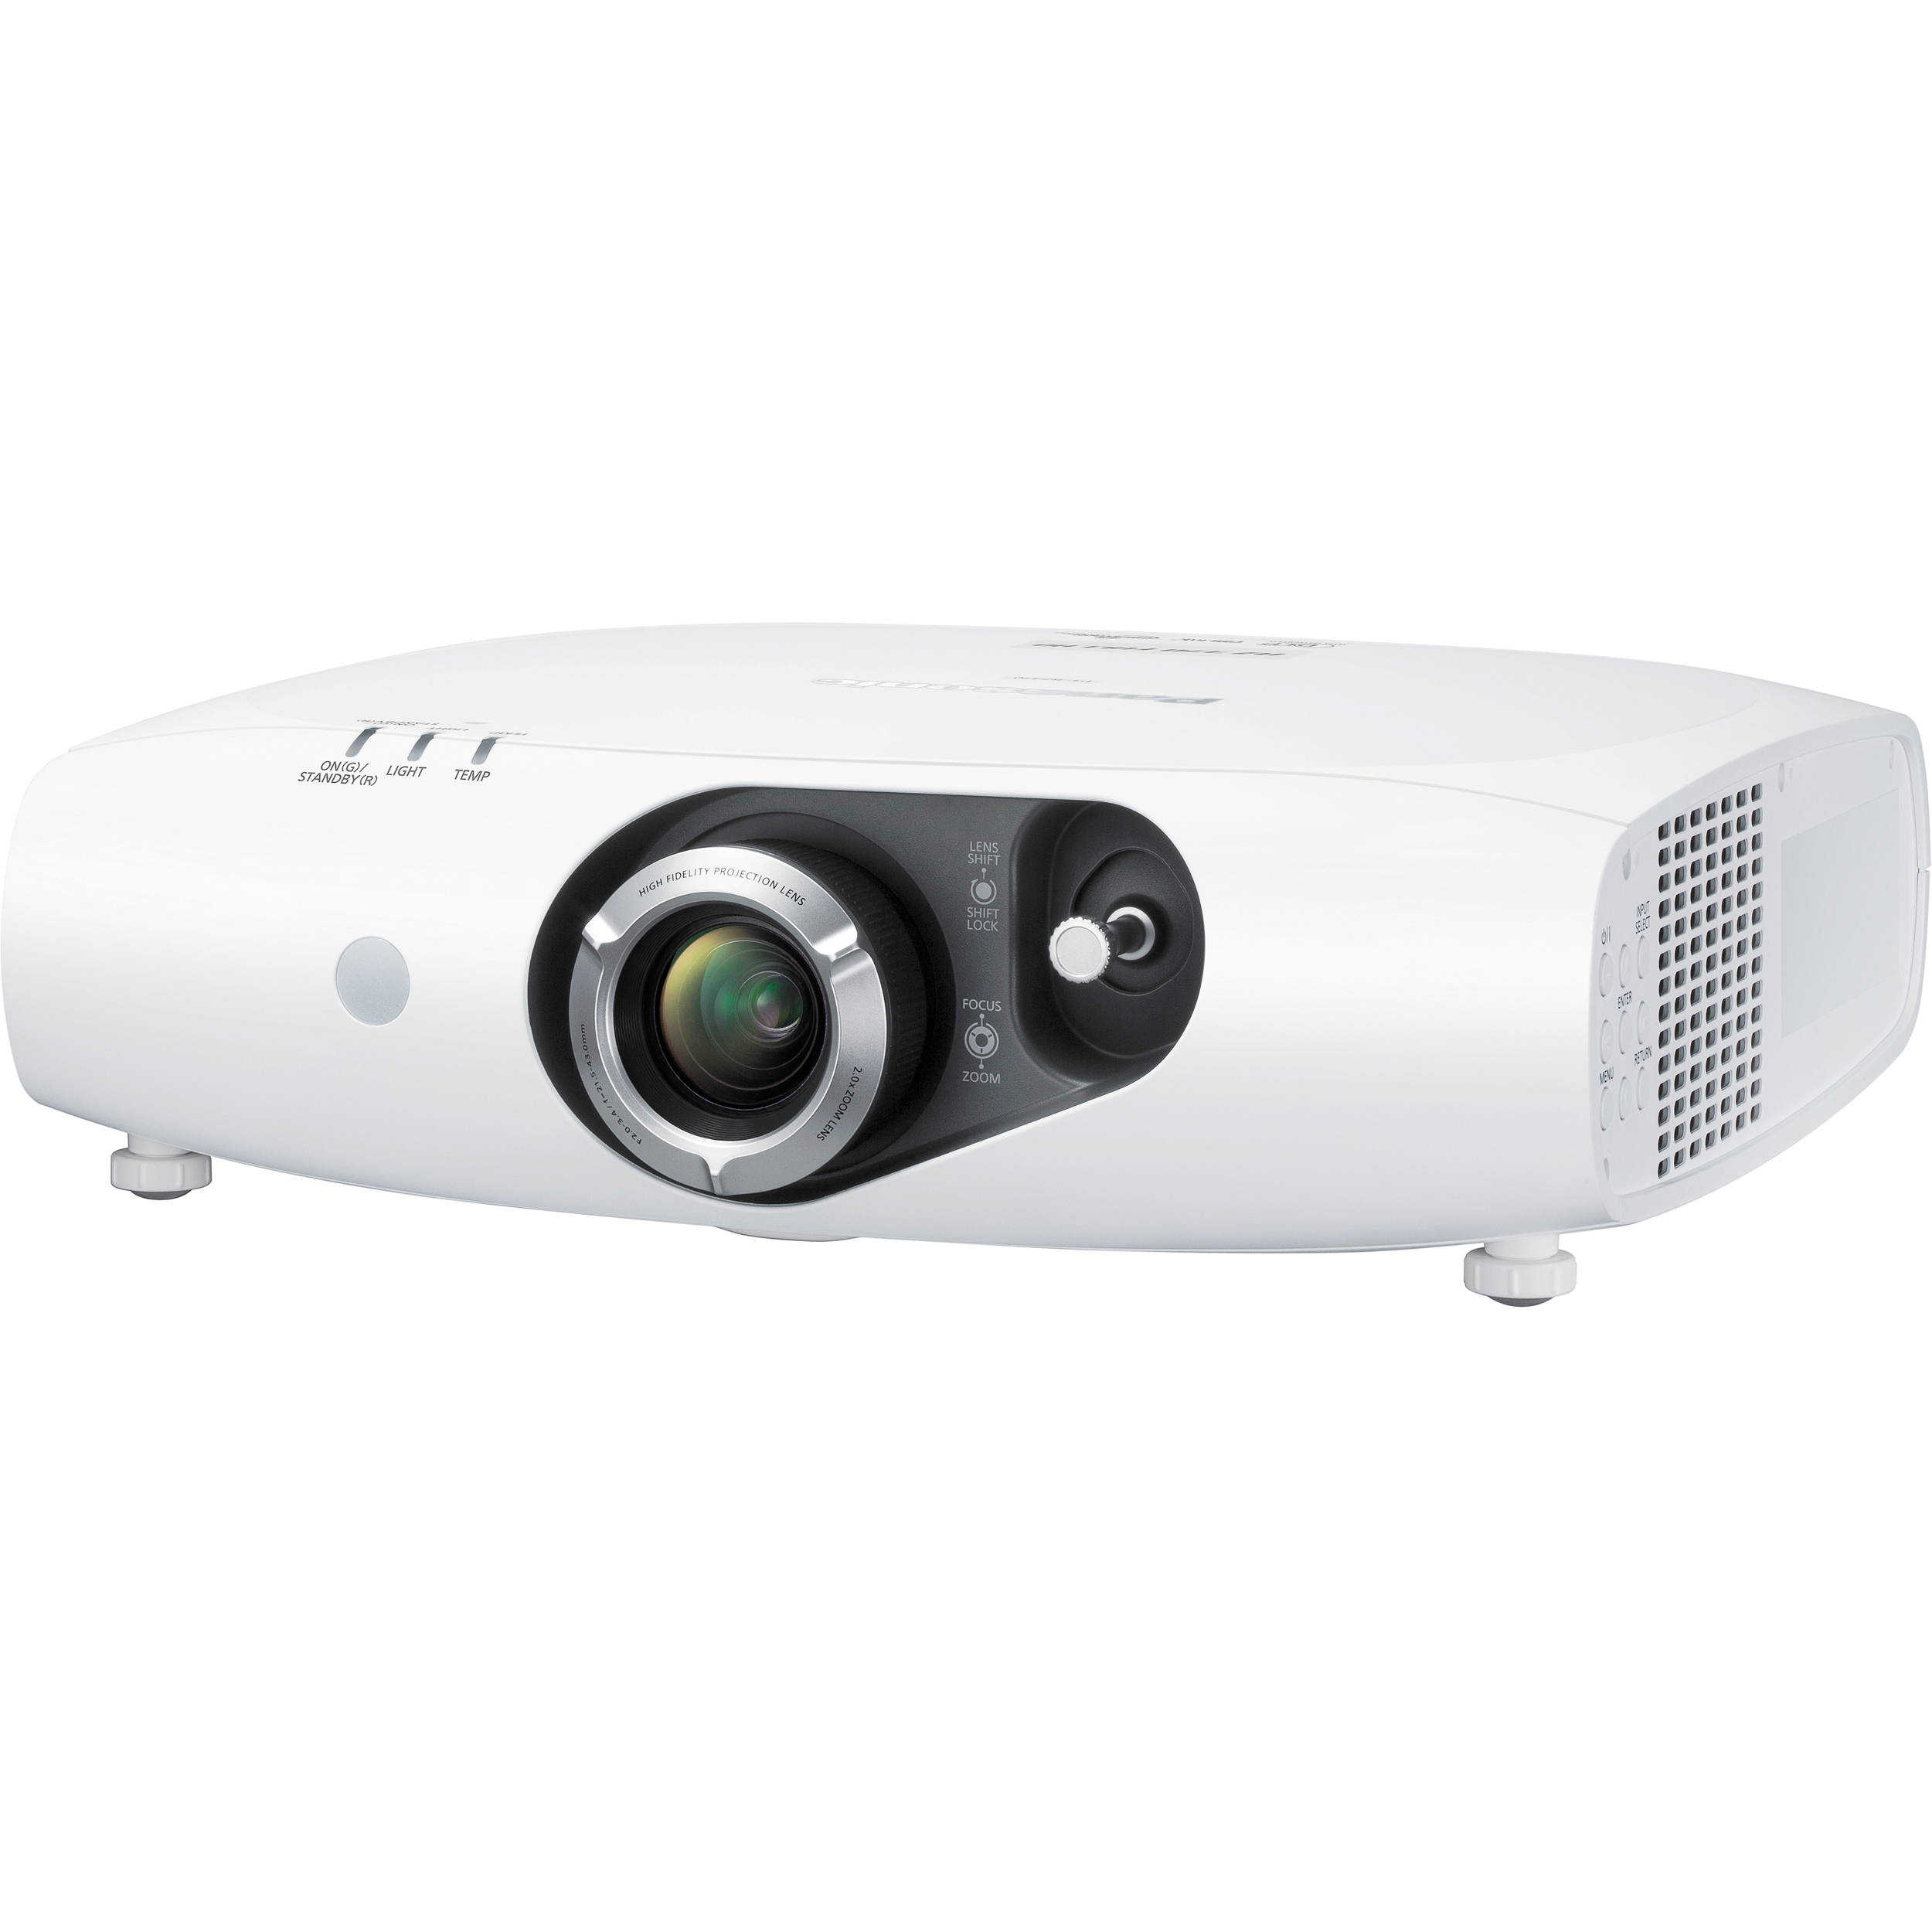 Panasonic pt rz470uw 3500 lumen full hd dlp projector pt for Hd projector